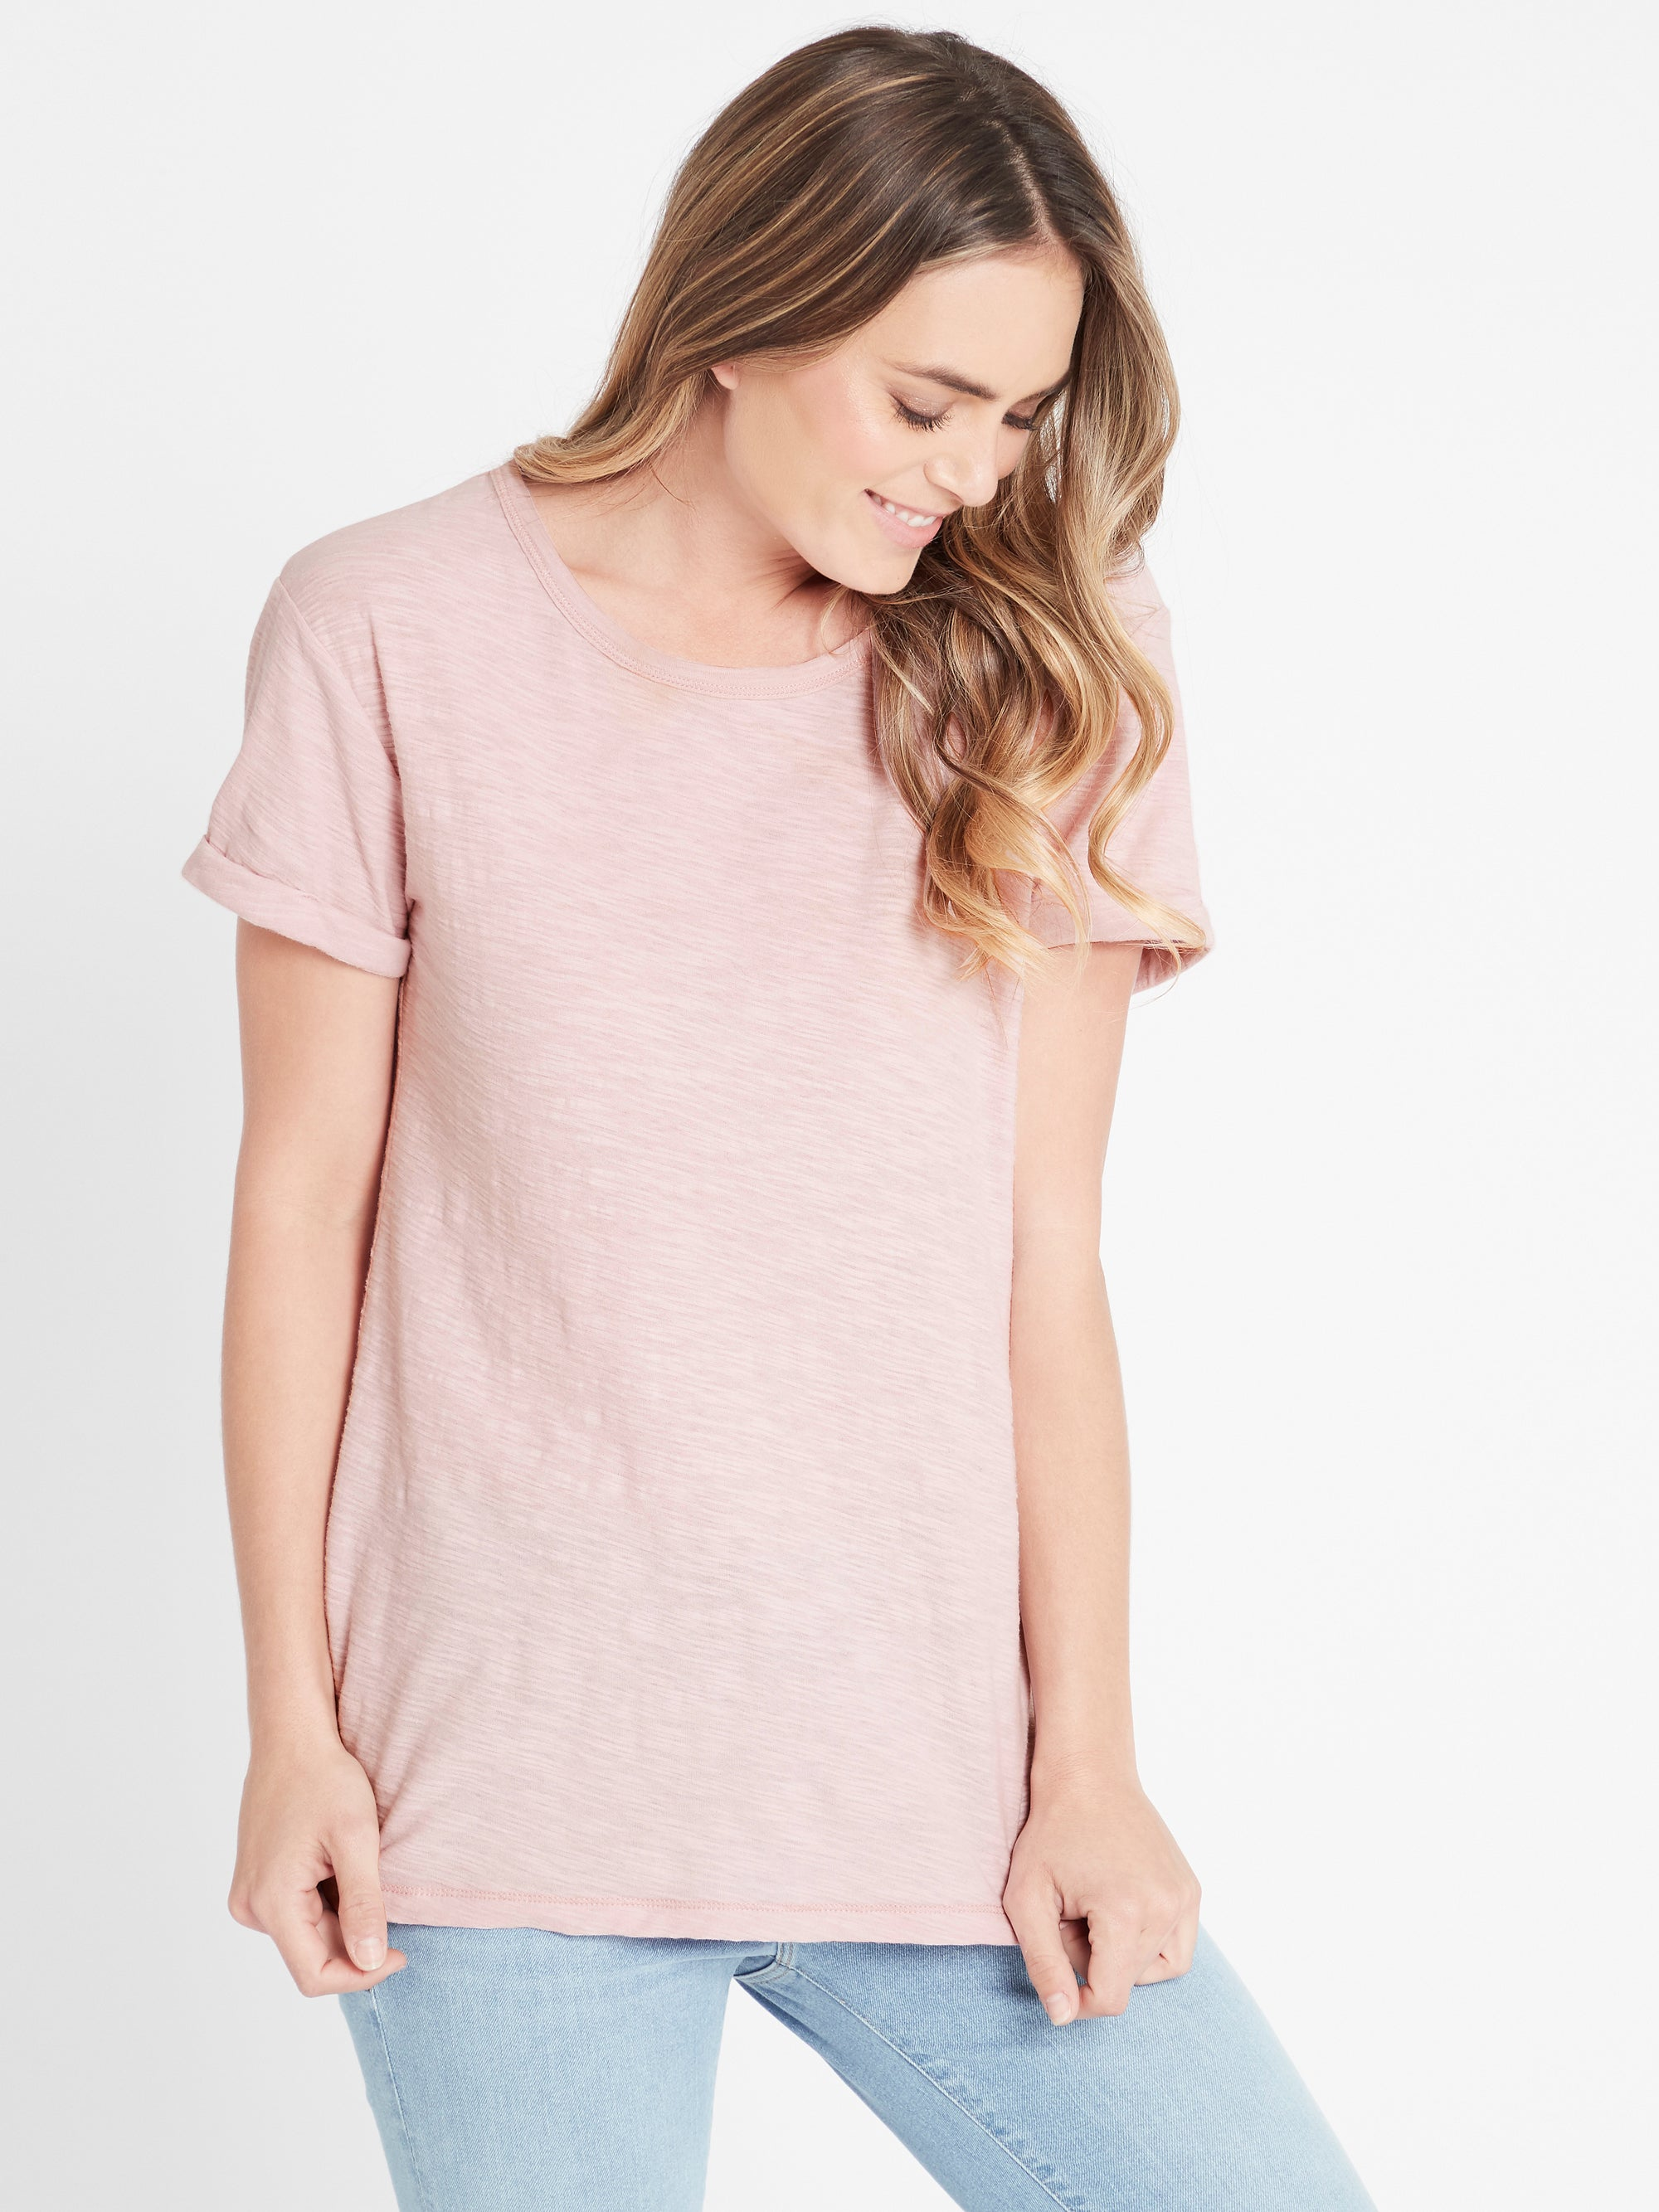 Evie Rolled Sleeve T-Shirt in Vintage Rose